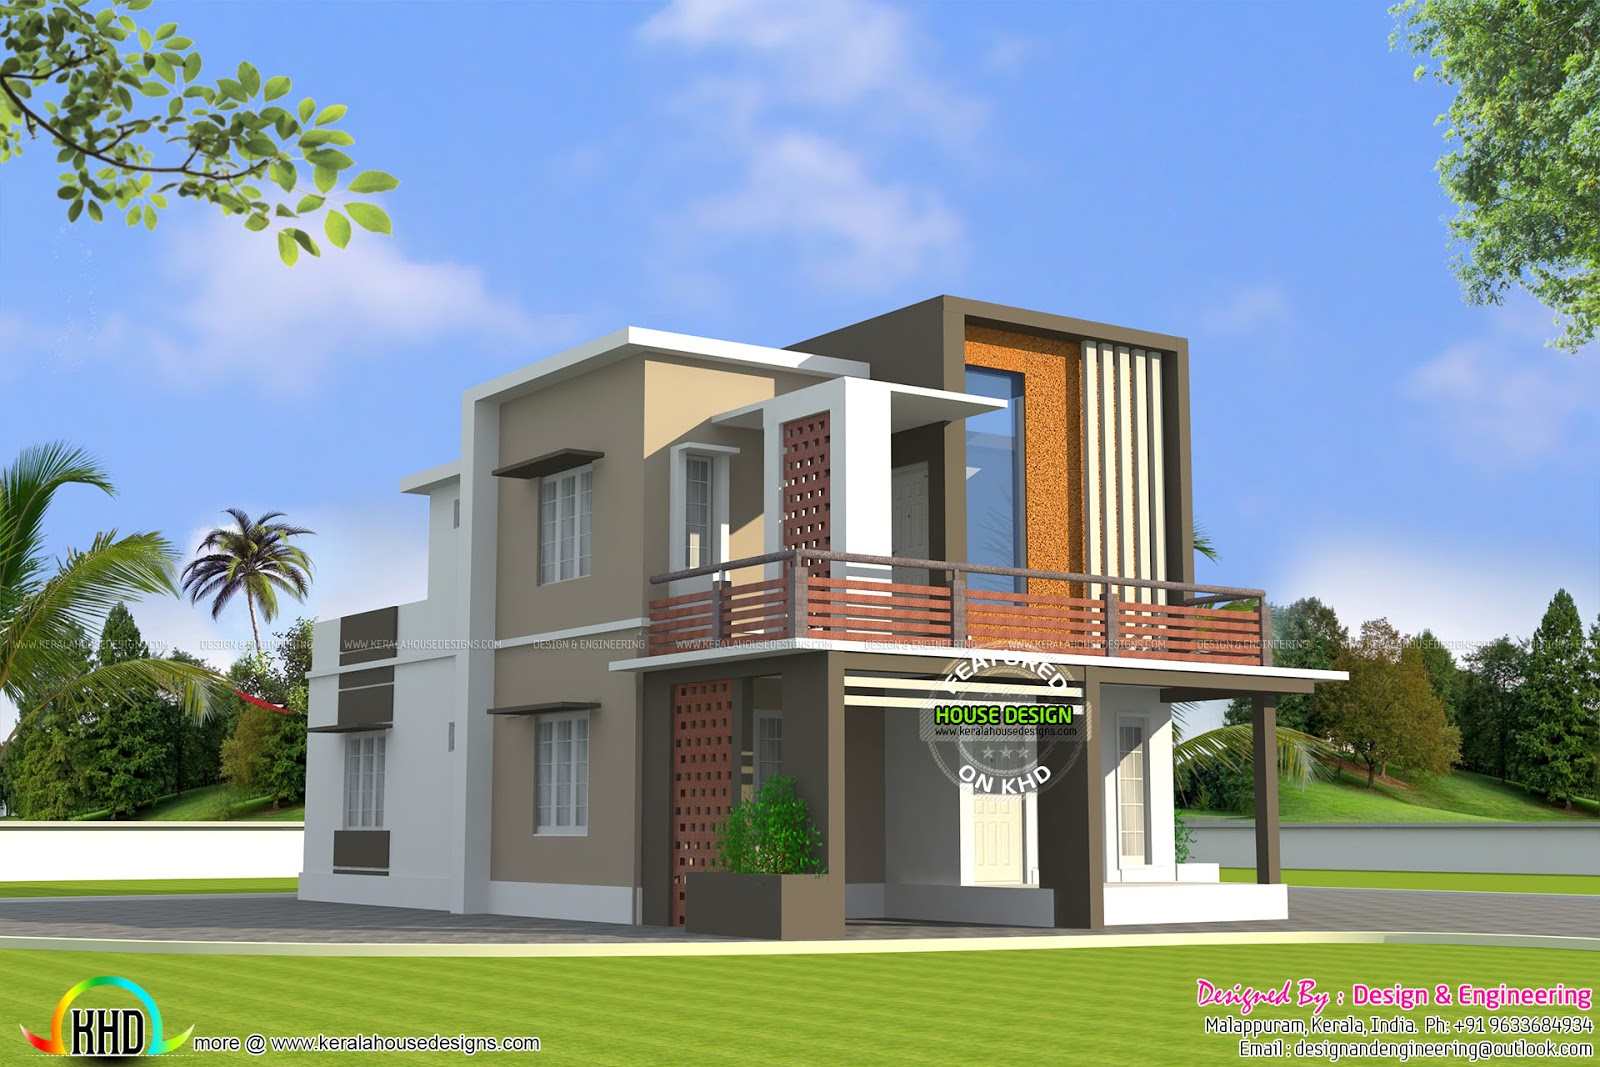 Low cost double floor home plan kerala home design and floor plans Home design and cost